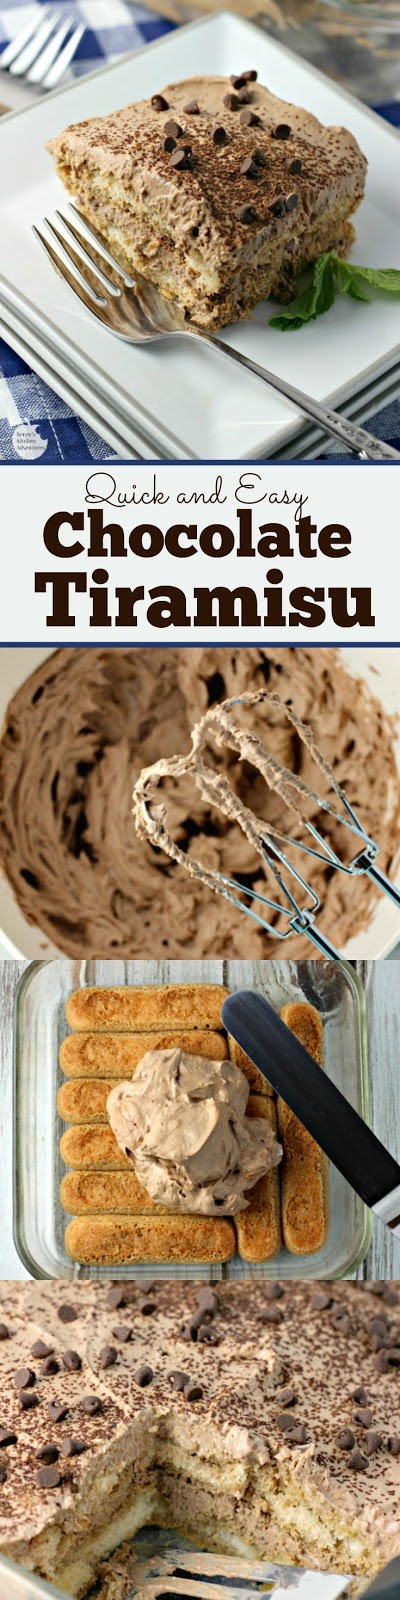 Chocolate Tiramisu | by Renee's Kitchen Adventures - quick and easy dessert recipe for chocolate flavored tiramisu #SundaySupper #RKArecipes